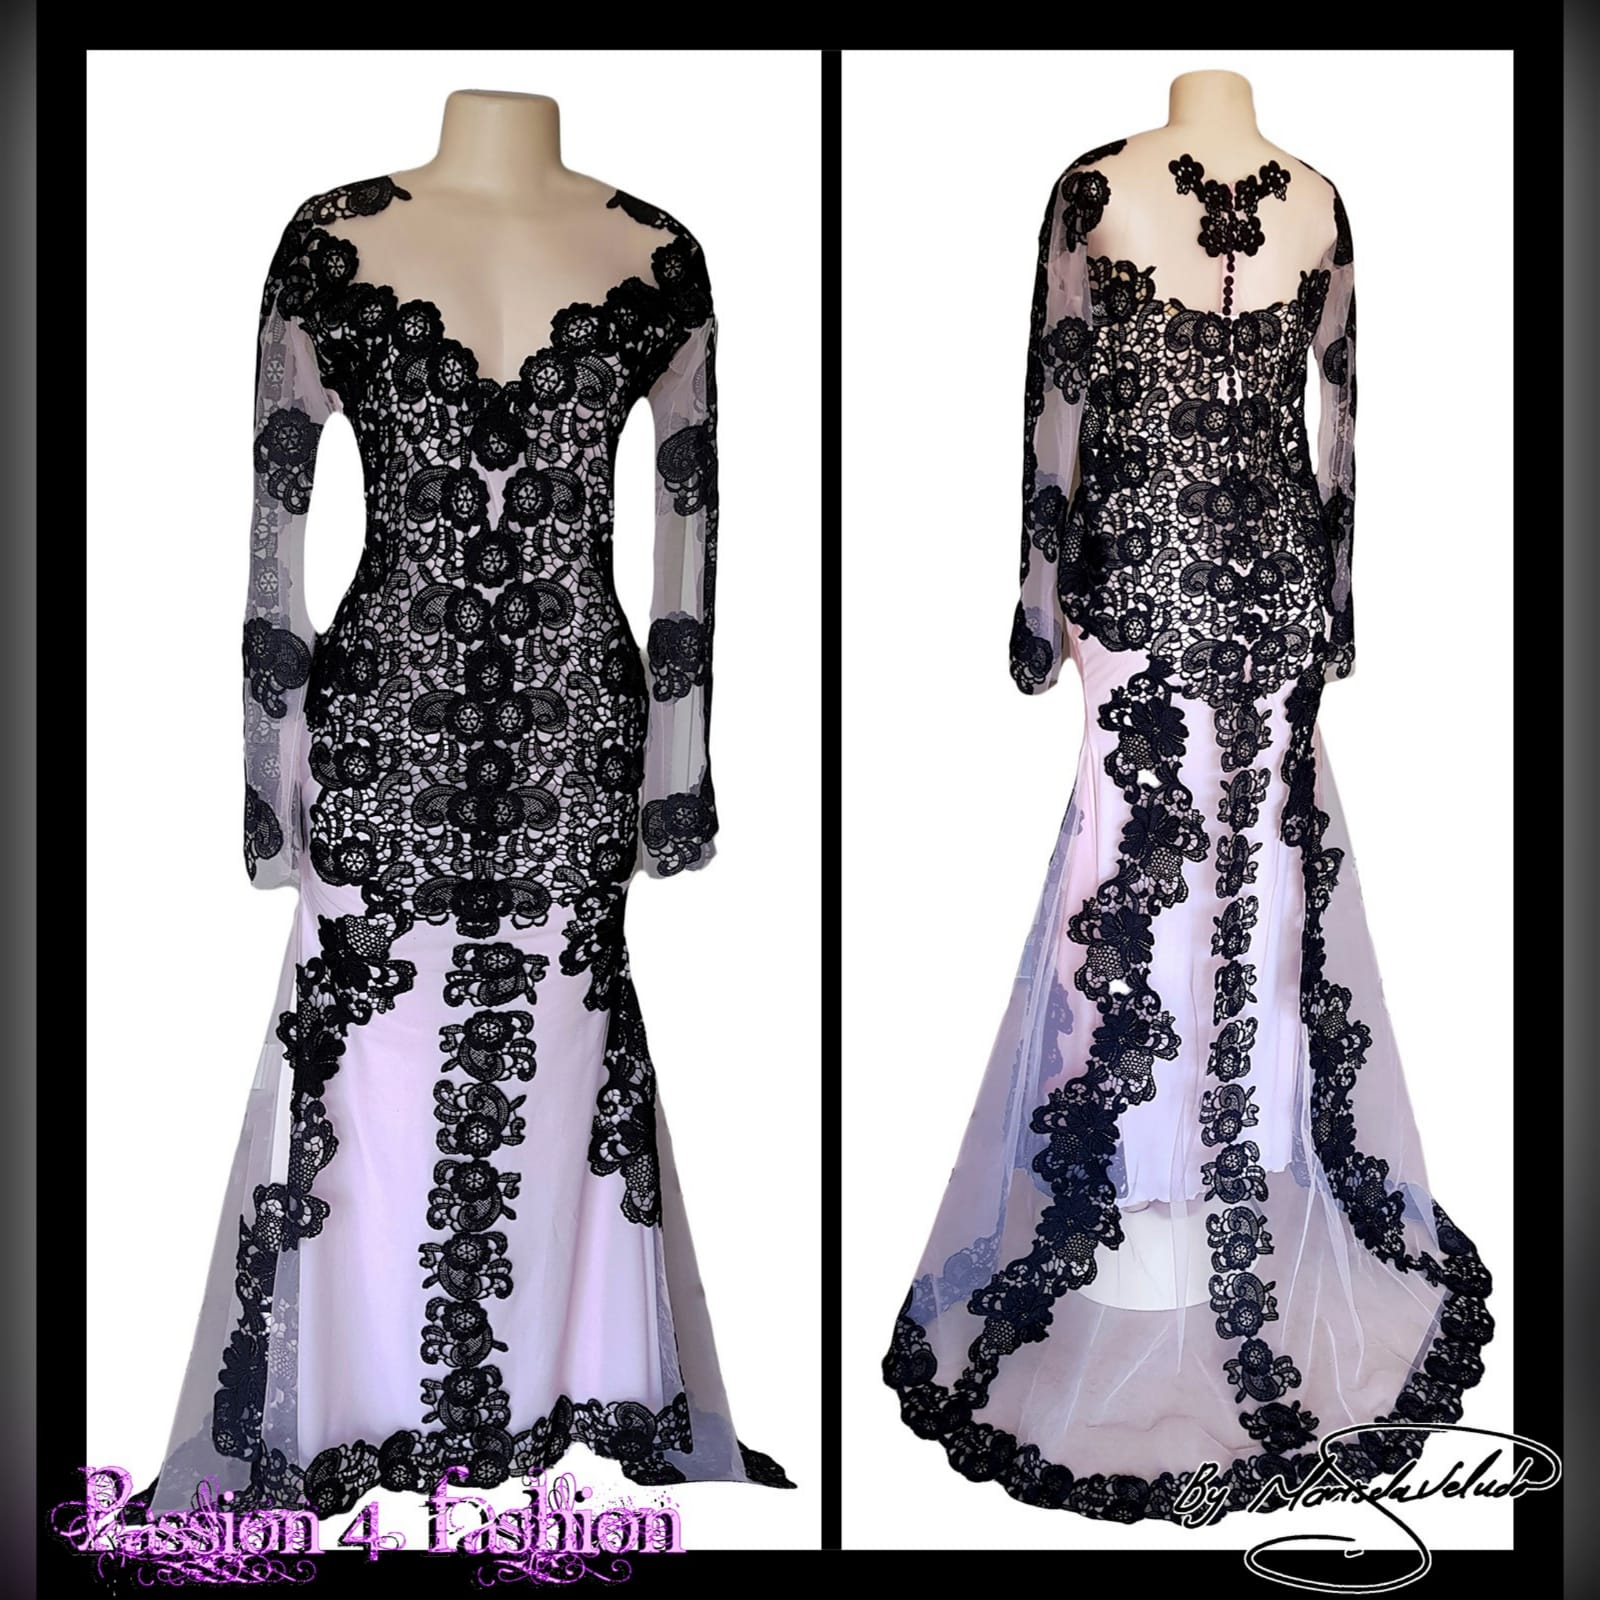 Black & nude lace formal awards ceremony dress 3 black & nude lace formal awards ceremony dress with long illusion lace sleeves, a train and covered buttons for back detail.